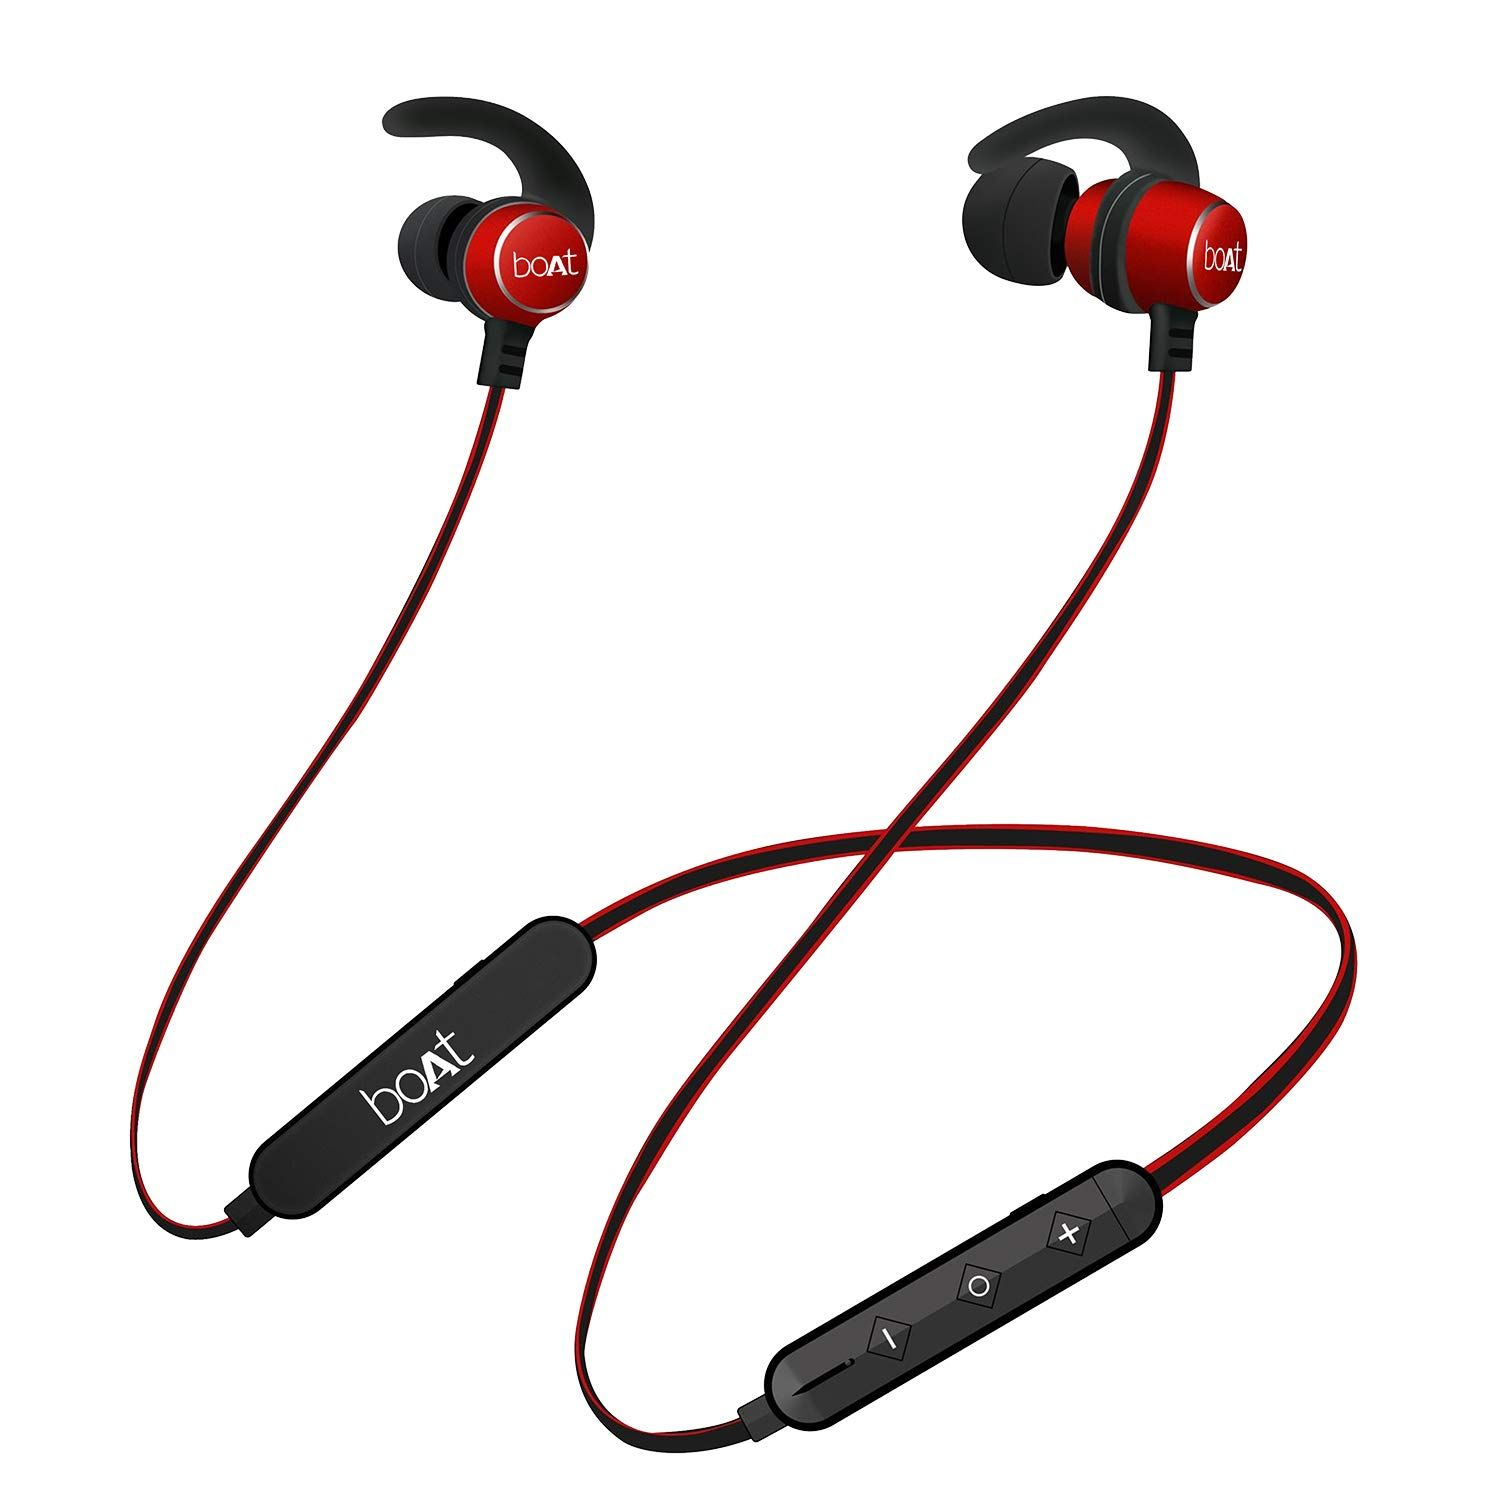 Have You Ditched The 3 5mm Headphones Jack And Now Looking For A Good Pair Of Bluetooth Earphones To Go Wireless Bluetooth Wireless Earphones Earphone Wireless